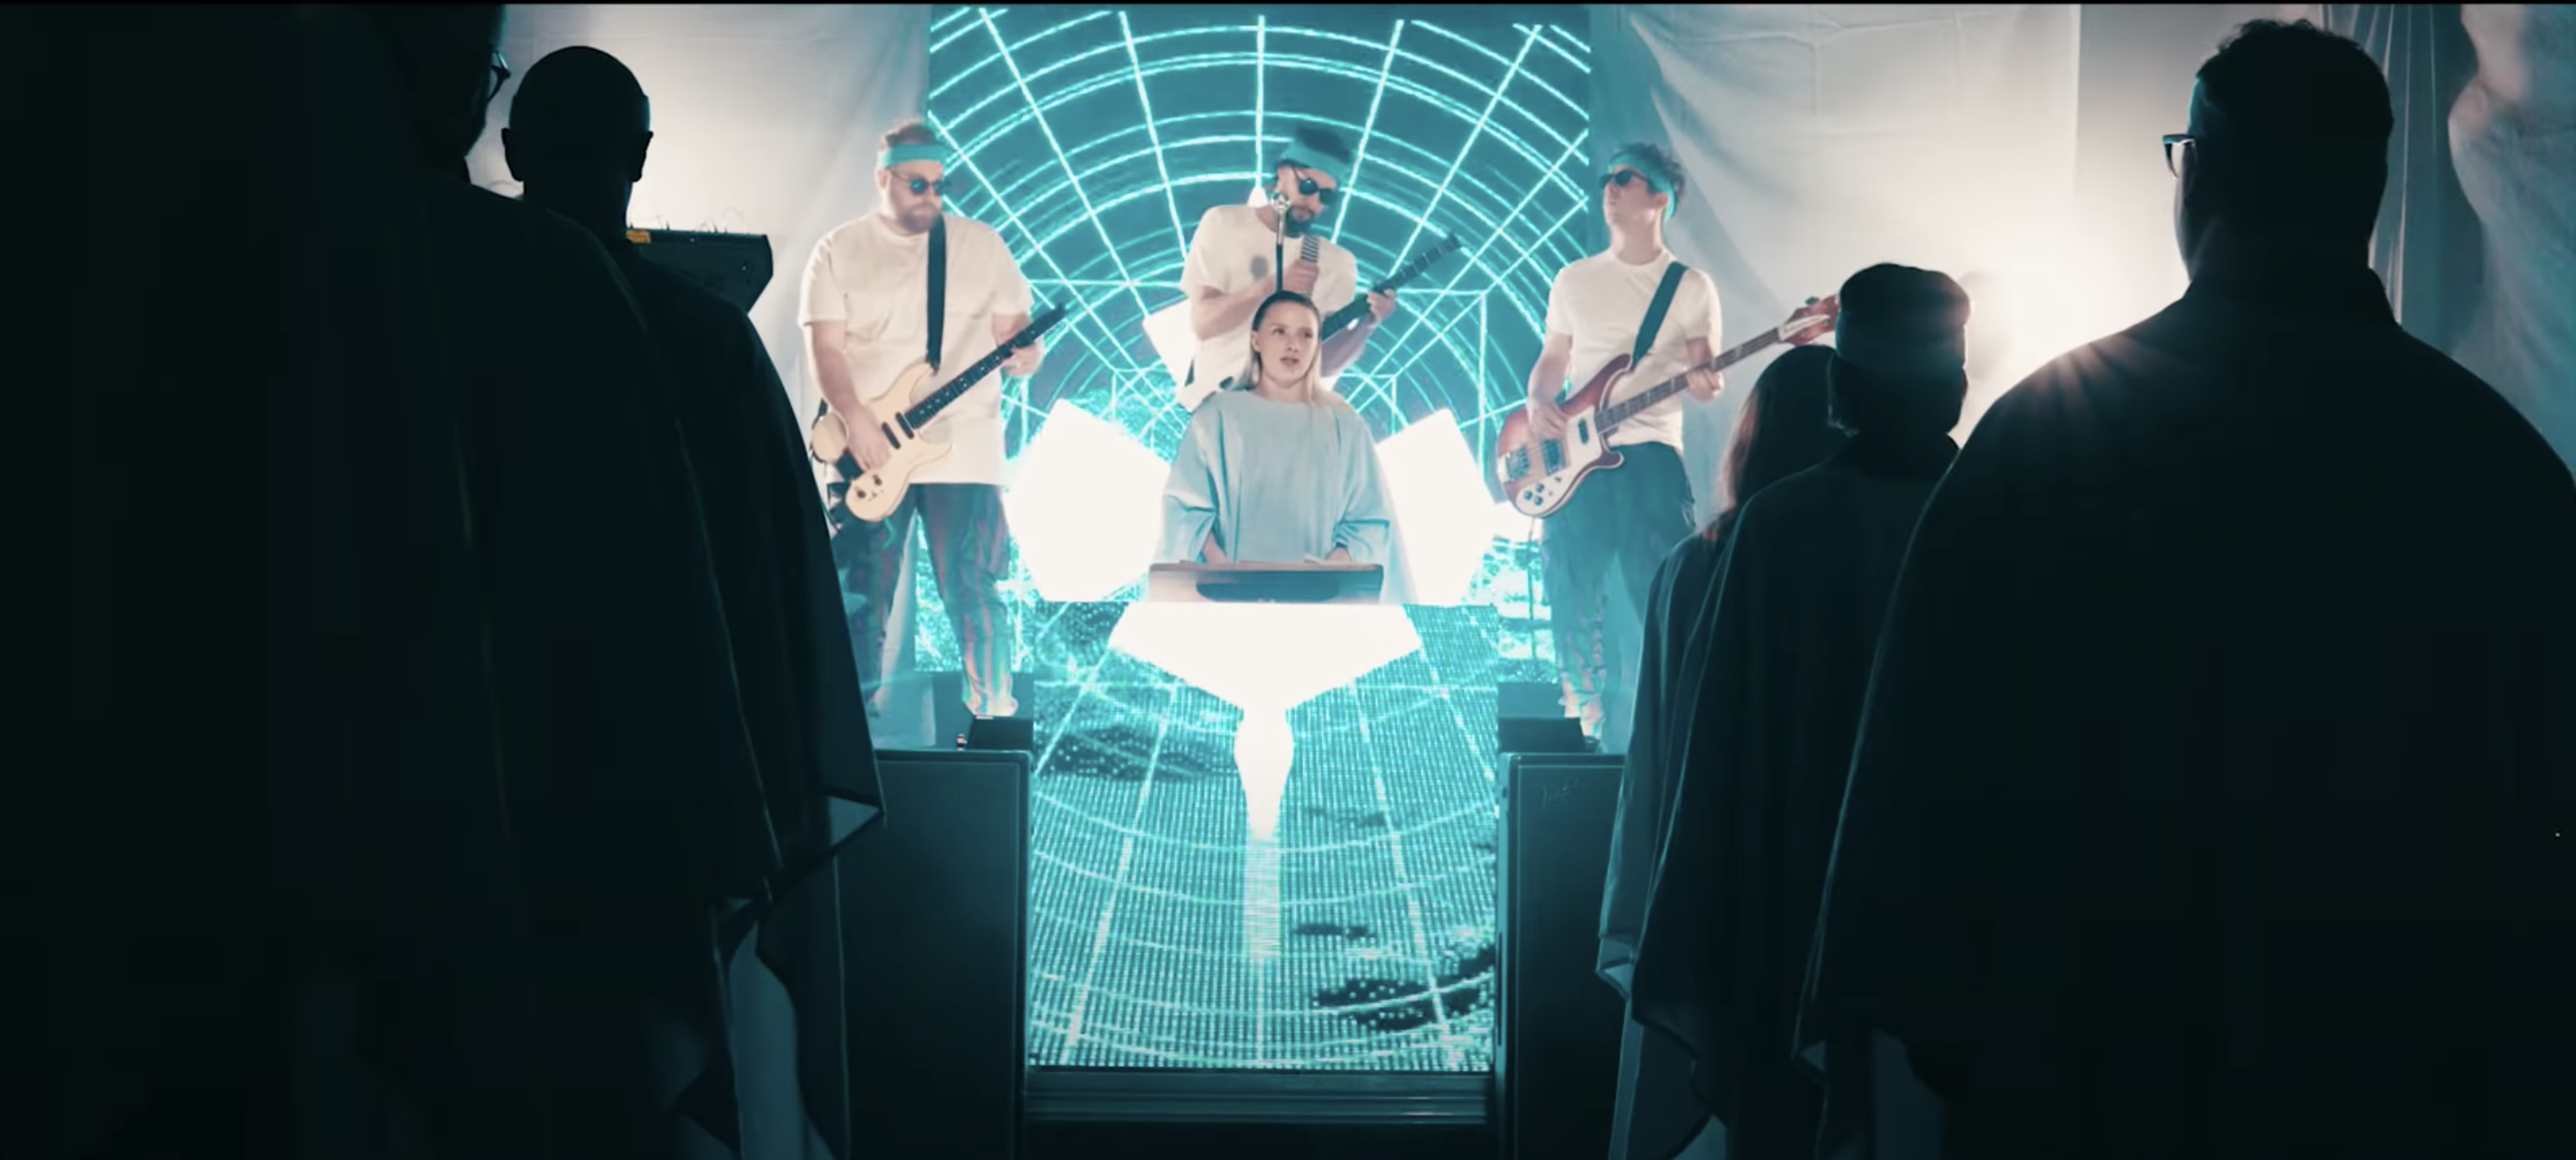 image from Dominic Lavoie music video. dark audience in church with band behind blonde woman draped in blue robes.